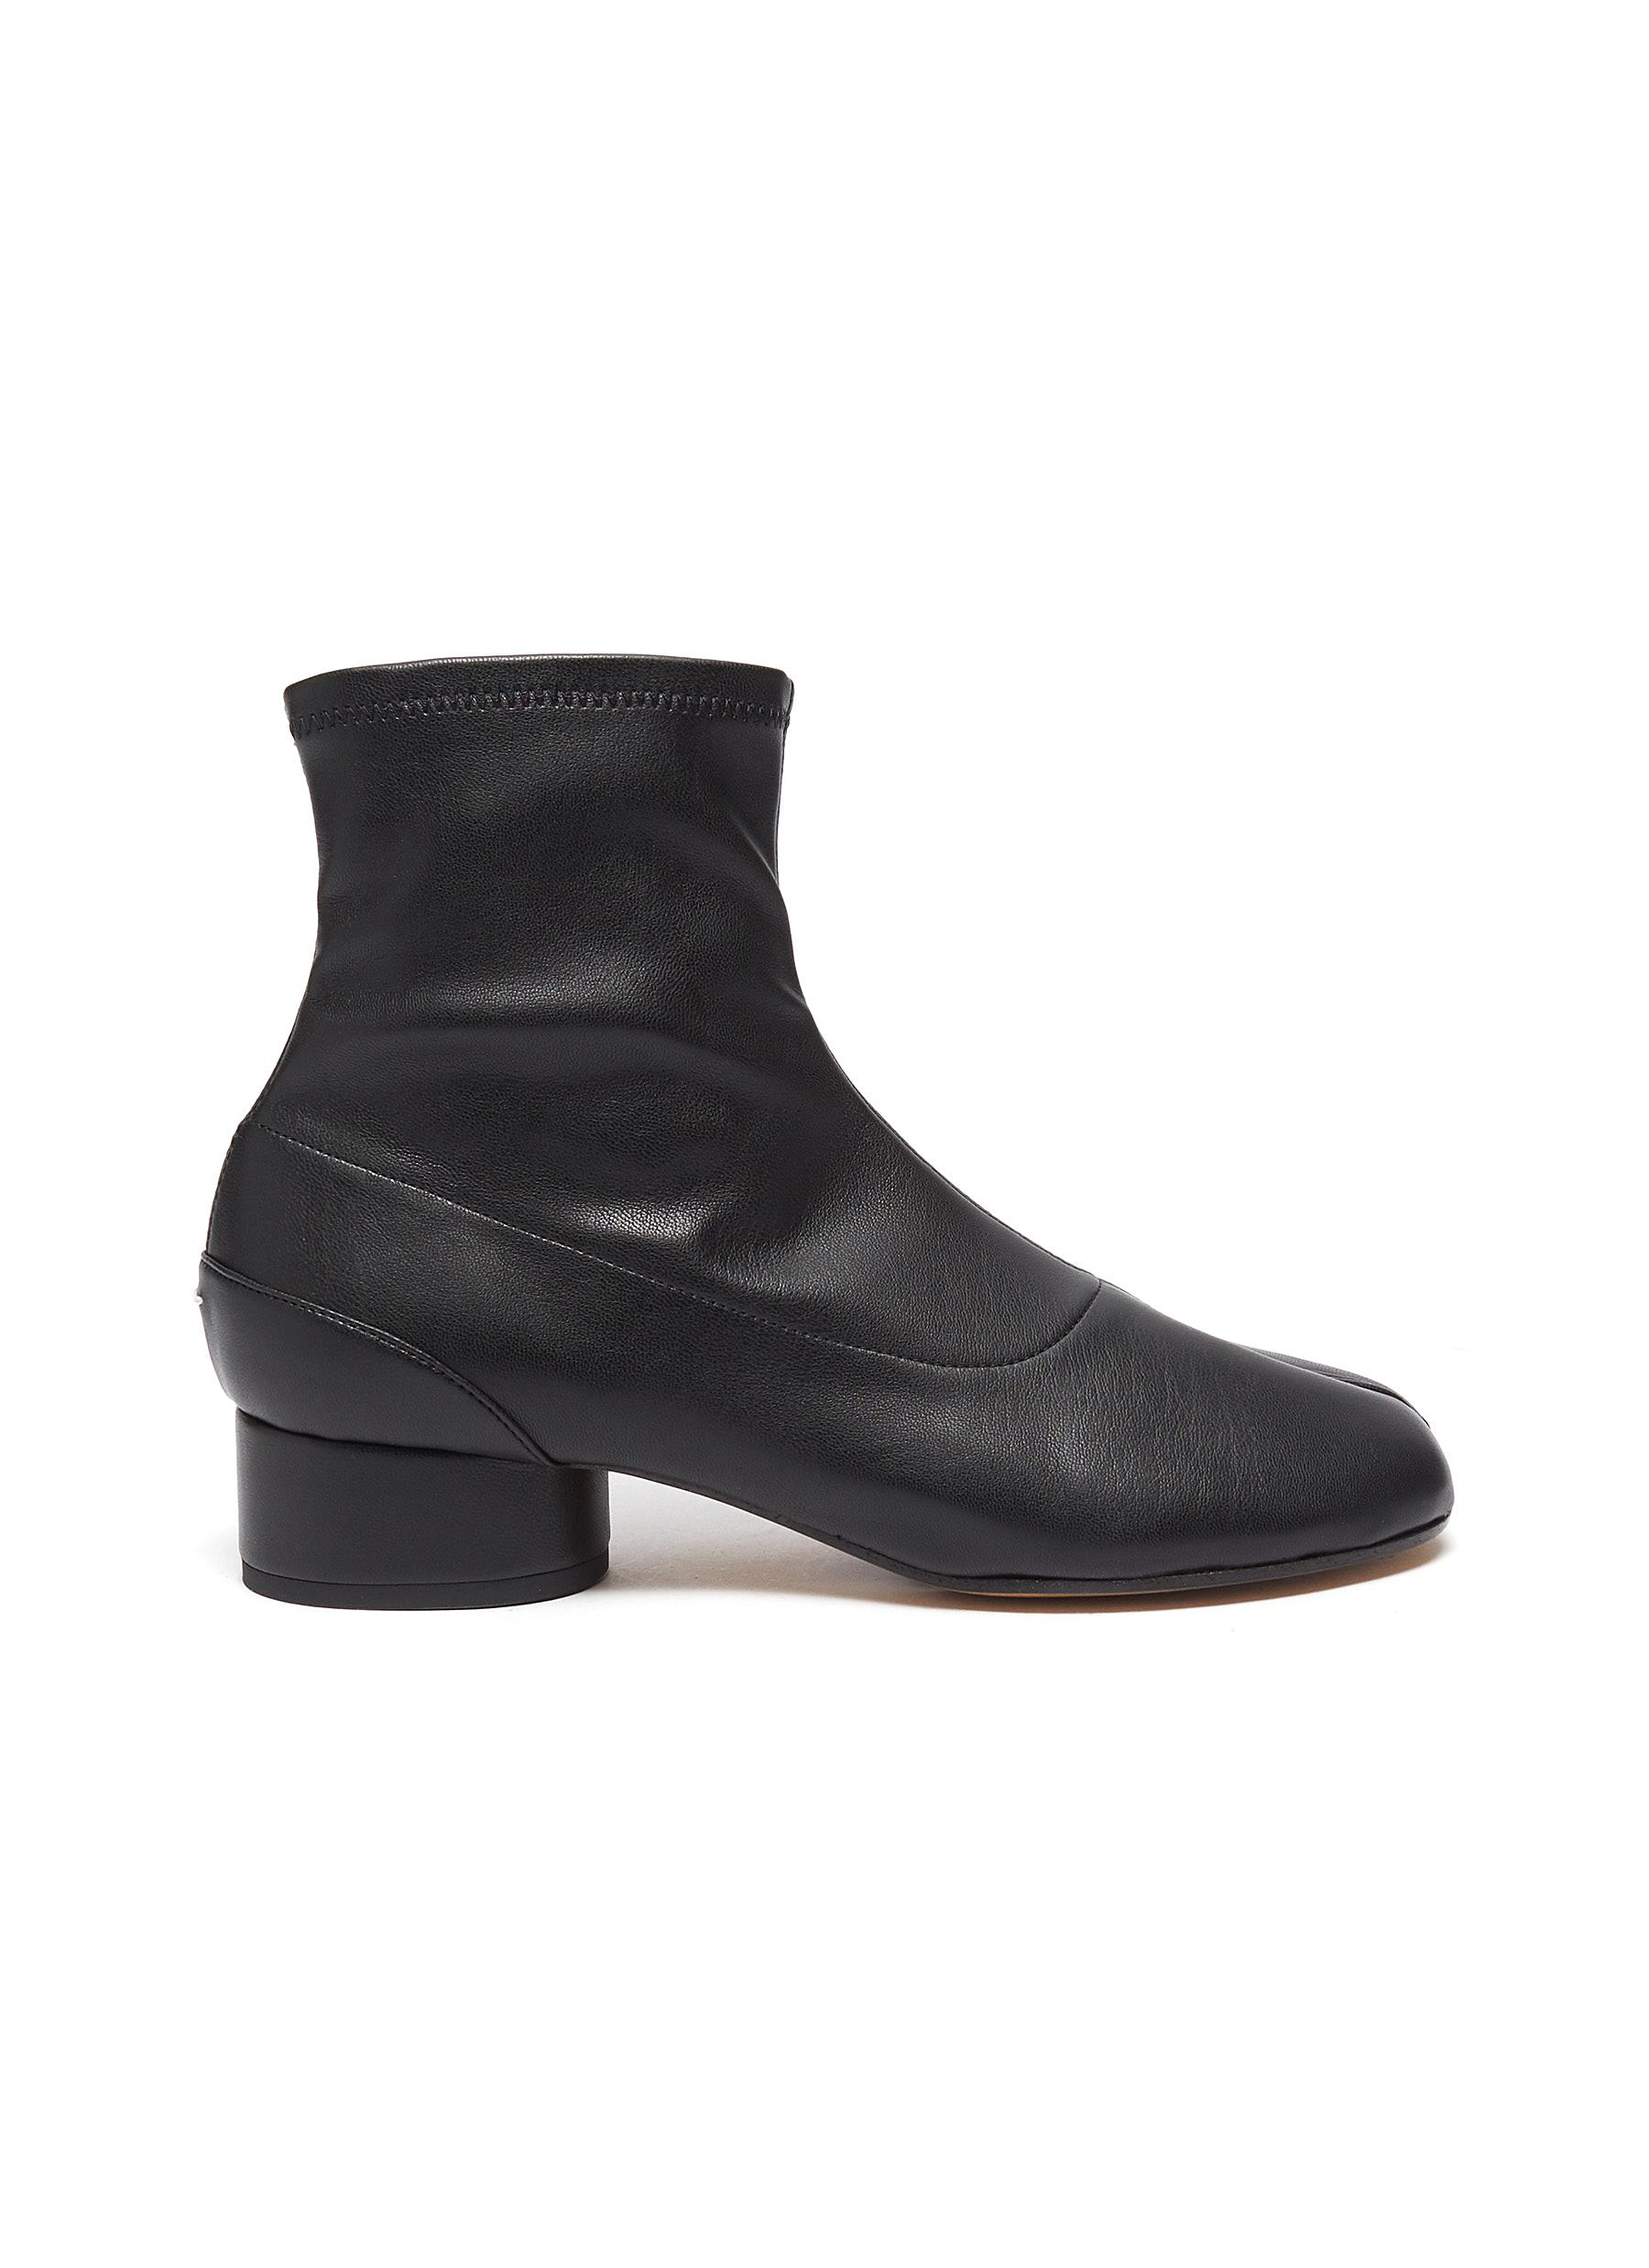 Maison Margiela Boots Tabi leather ankle boot